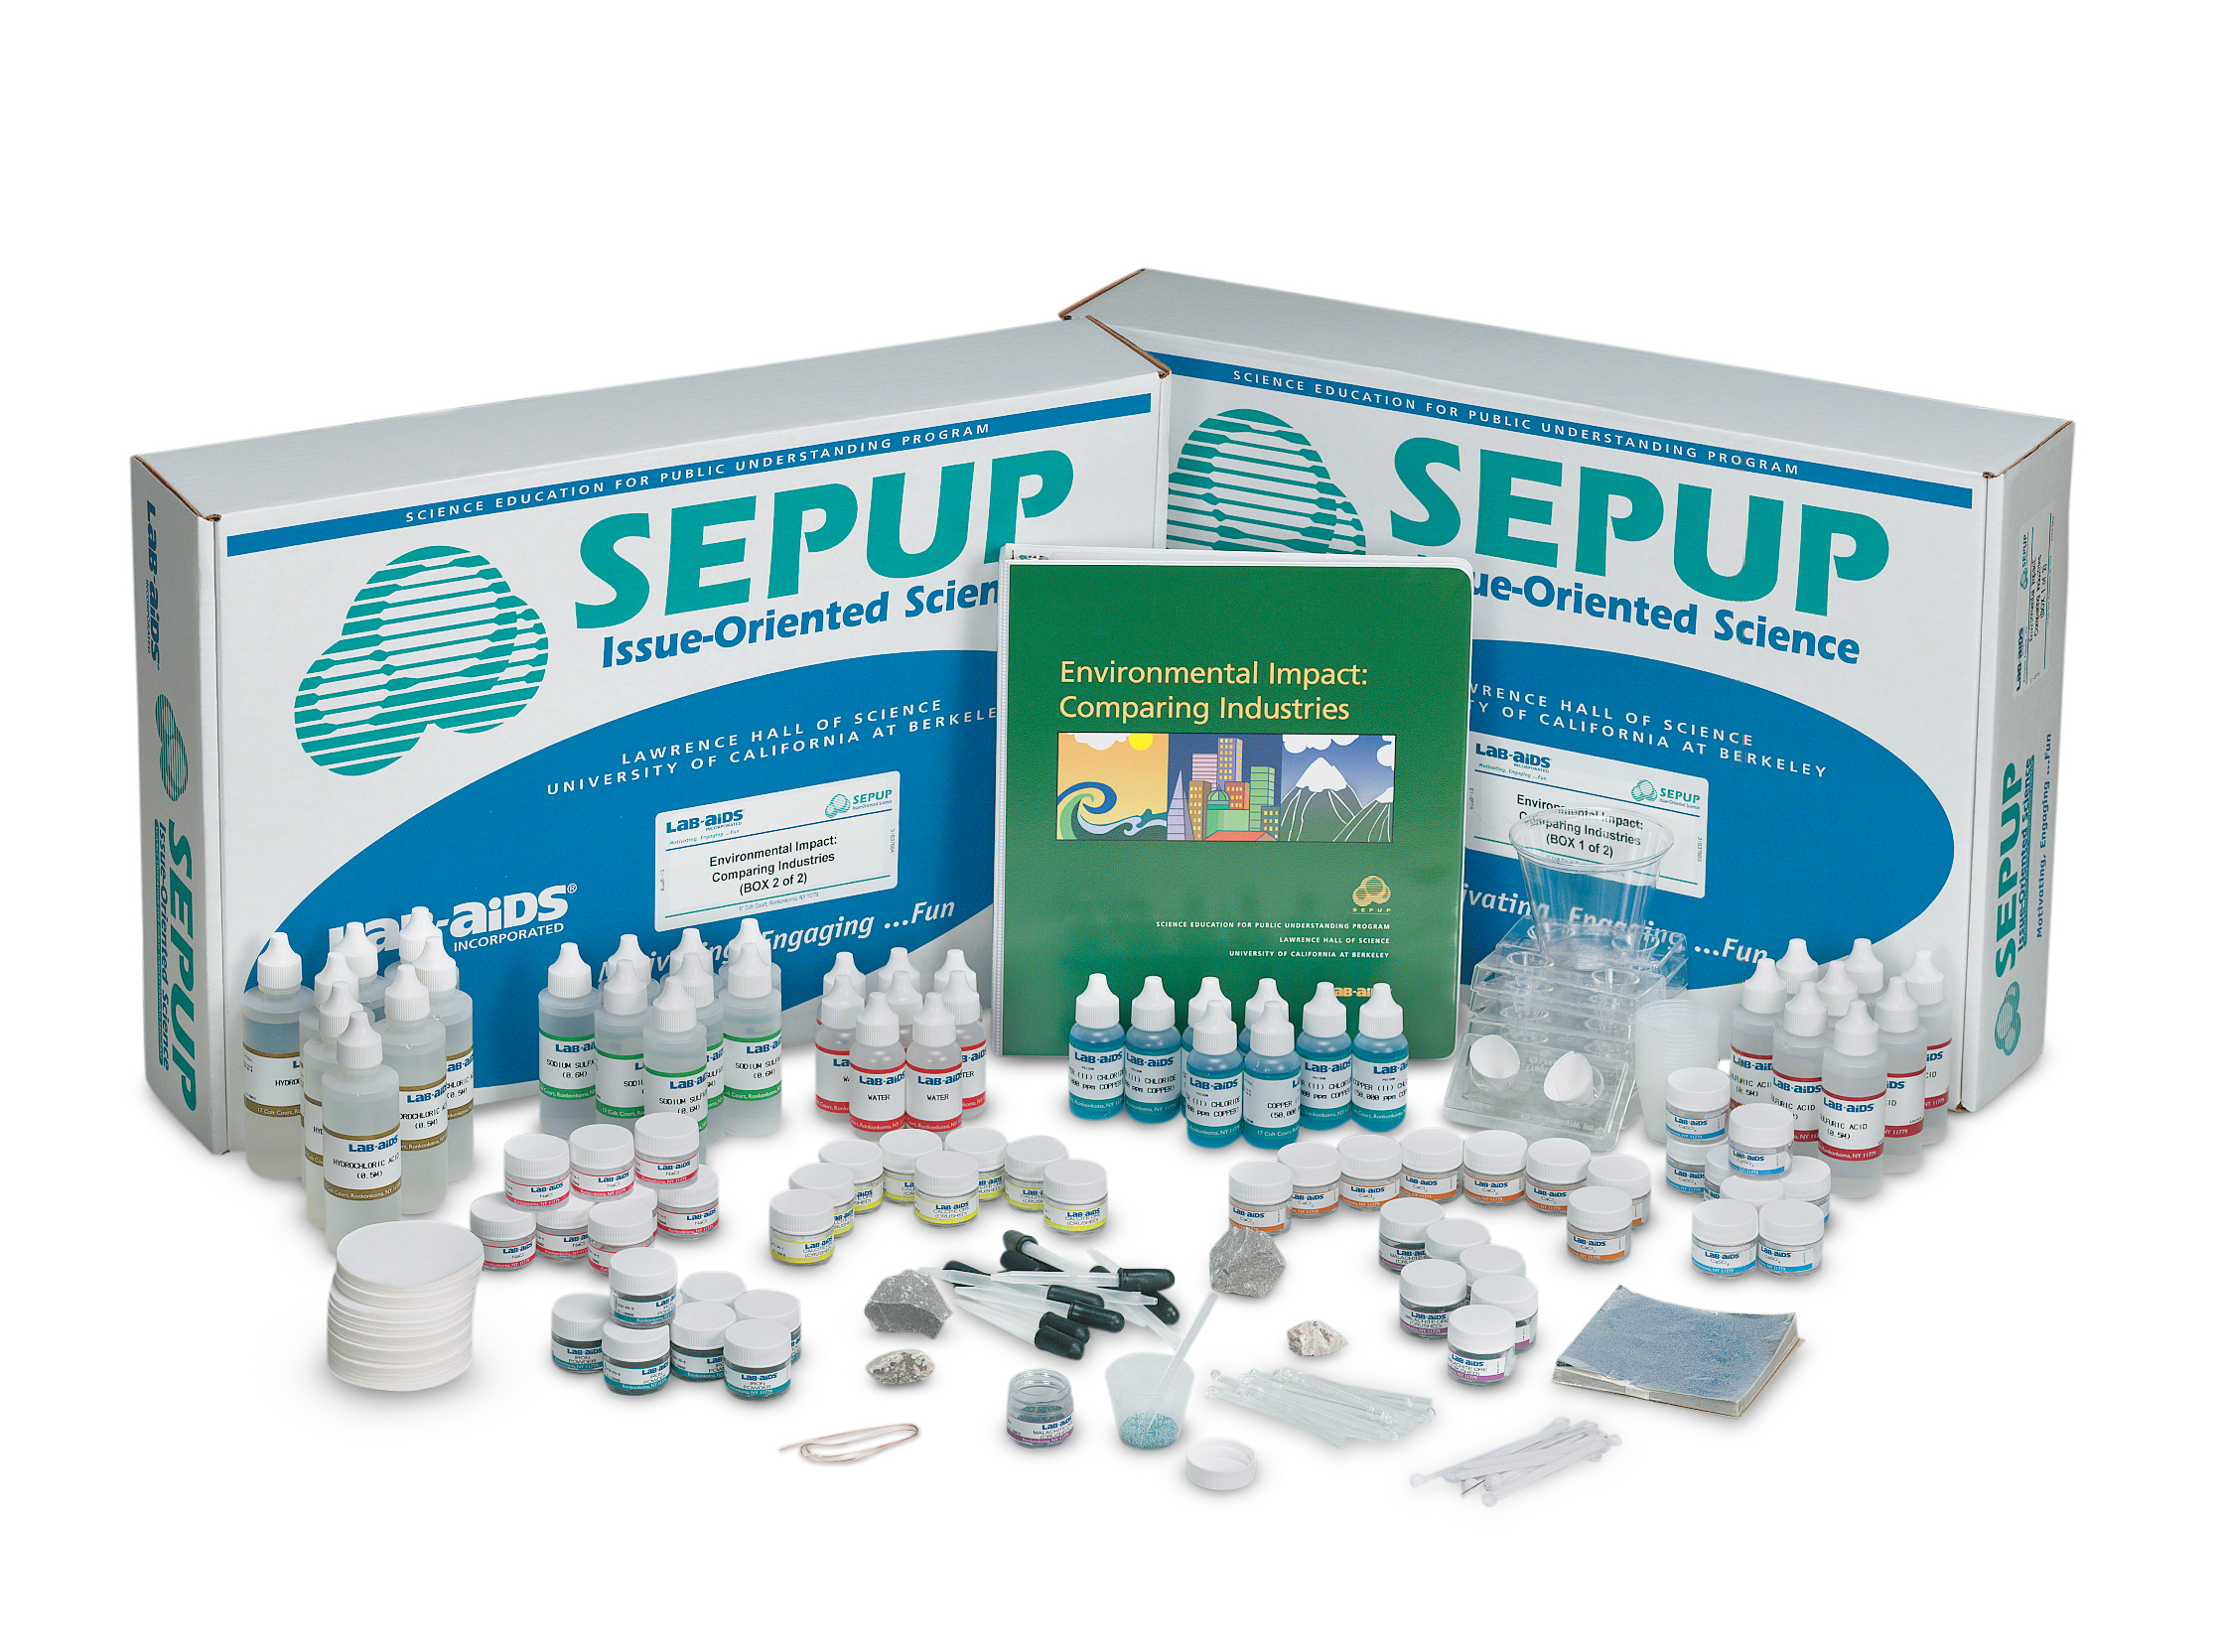 Environmental Impact: Comparing Industries (Developed by SEPUP)